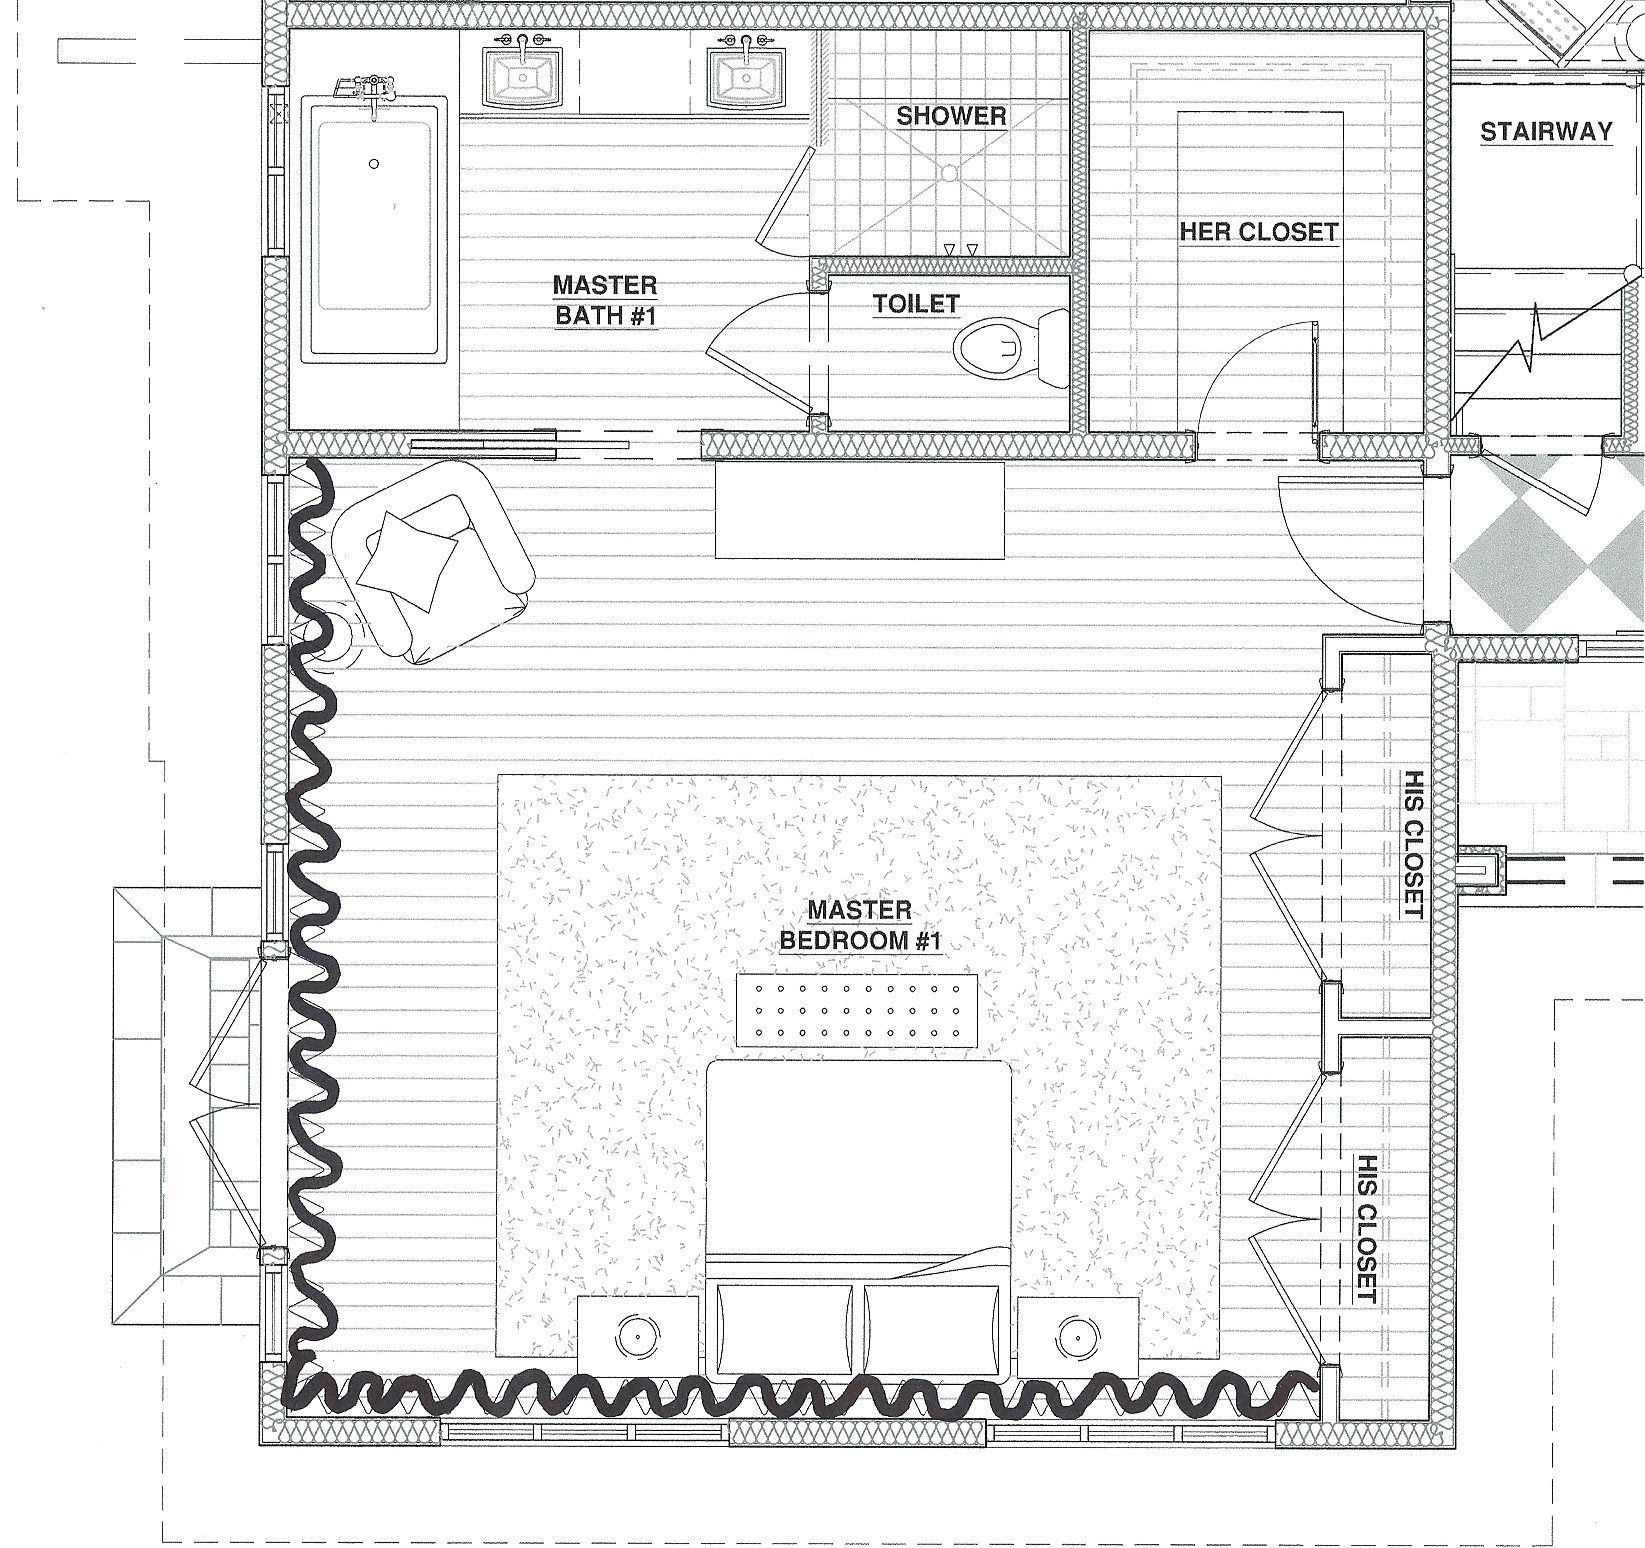 bedroom furniture layout. Master bedroom floor plan  souped up hotel room layout Floor plans Pinterest Layouts and Bedrooms